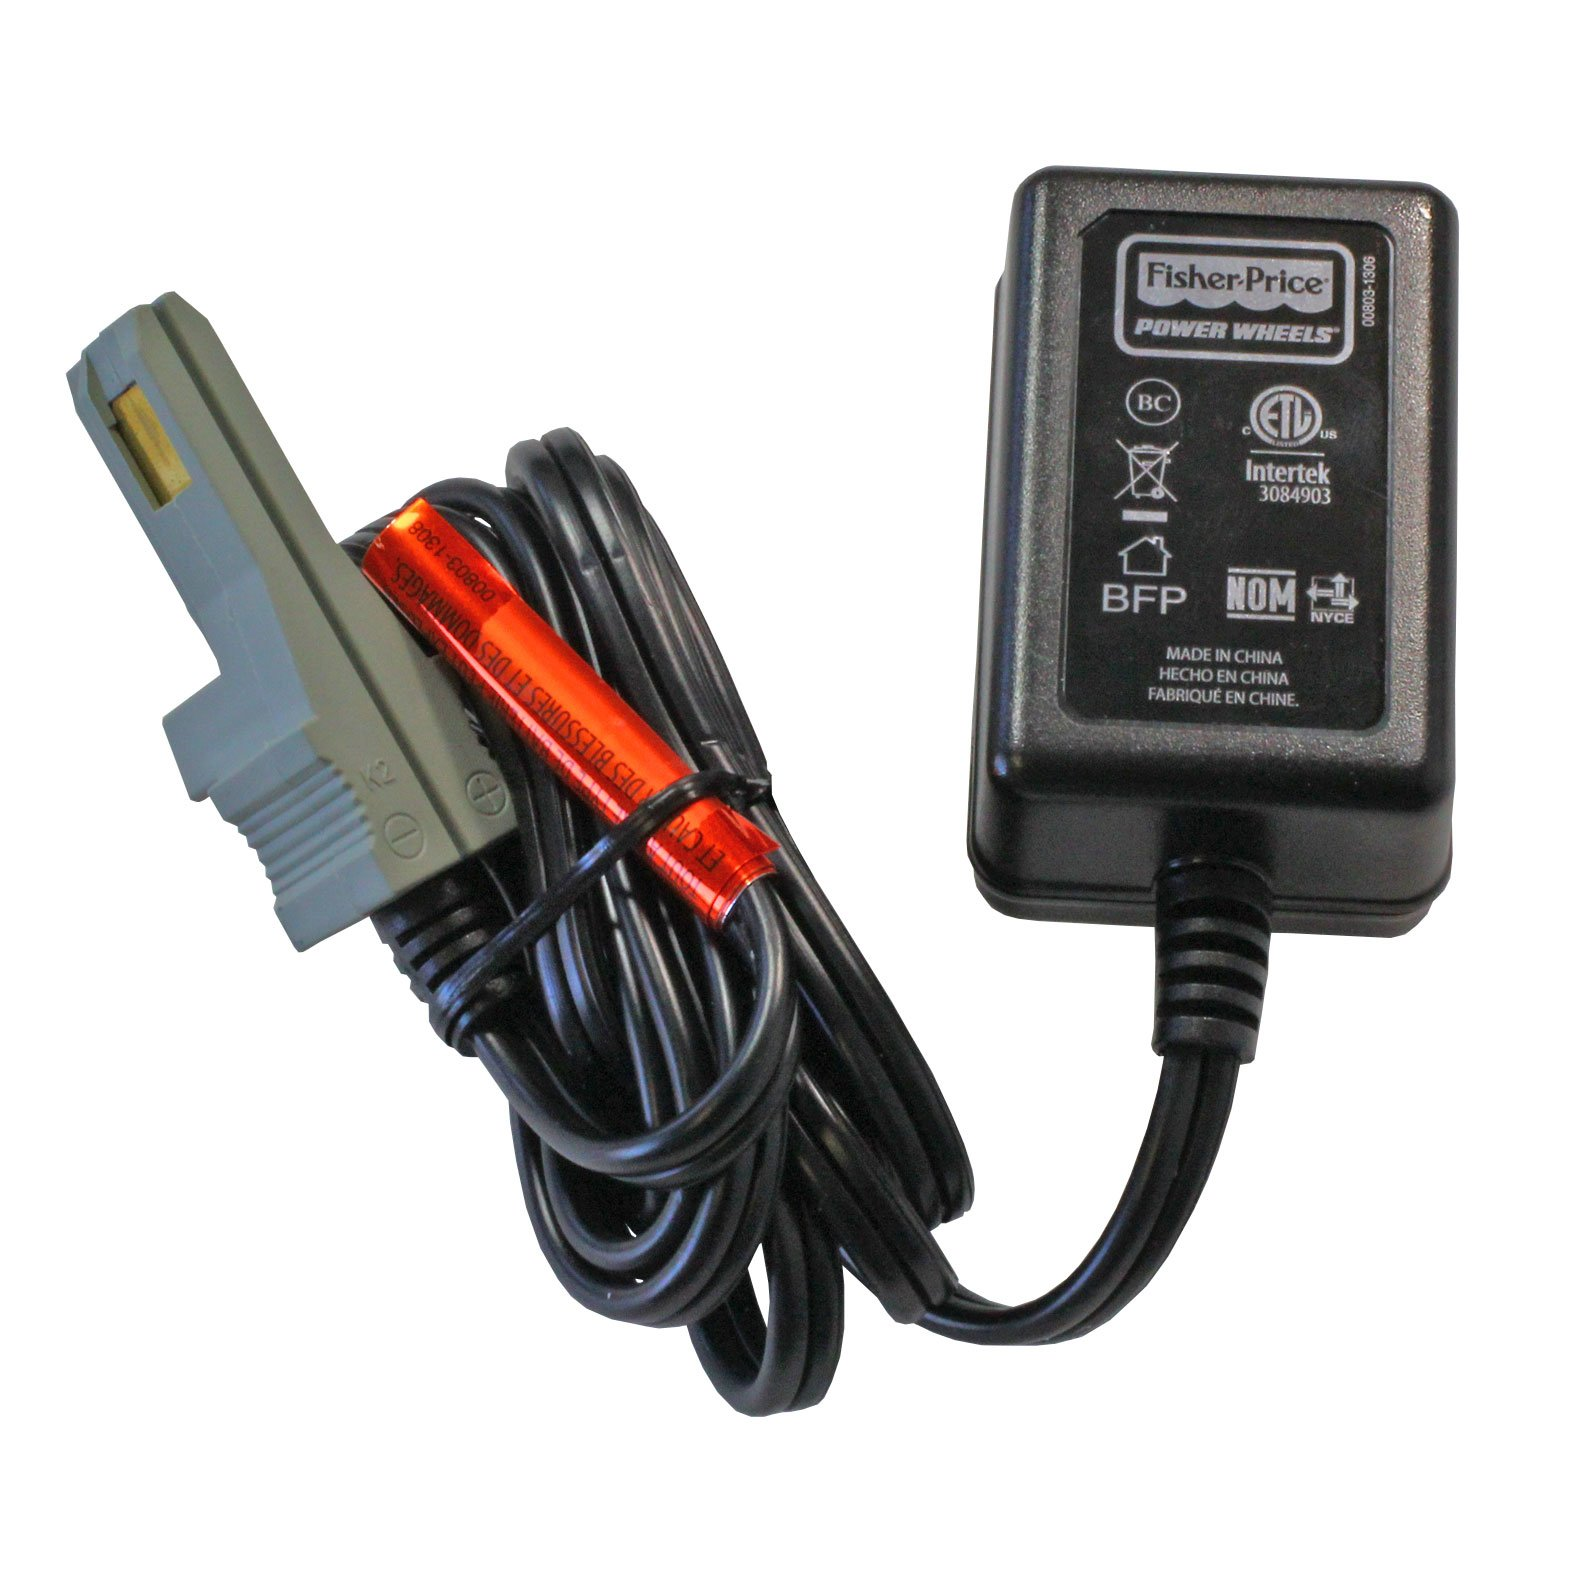 12 Volt Probe Power Wheels Battery Charger (for Gray and Orange Batteries)